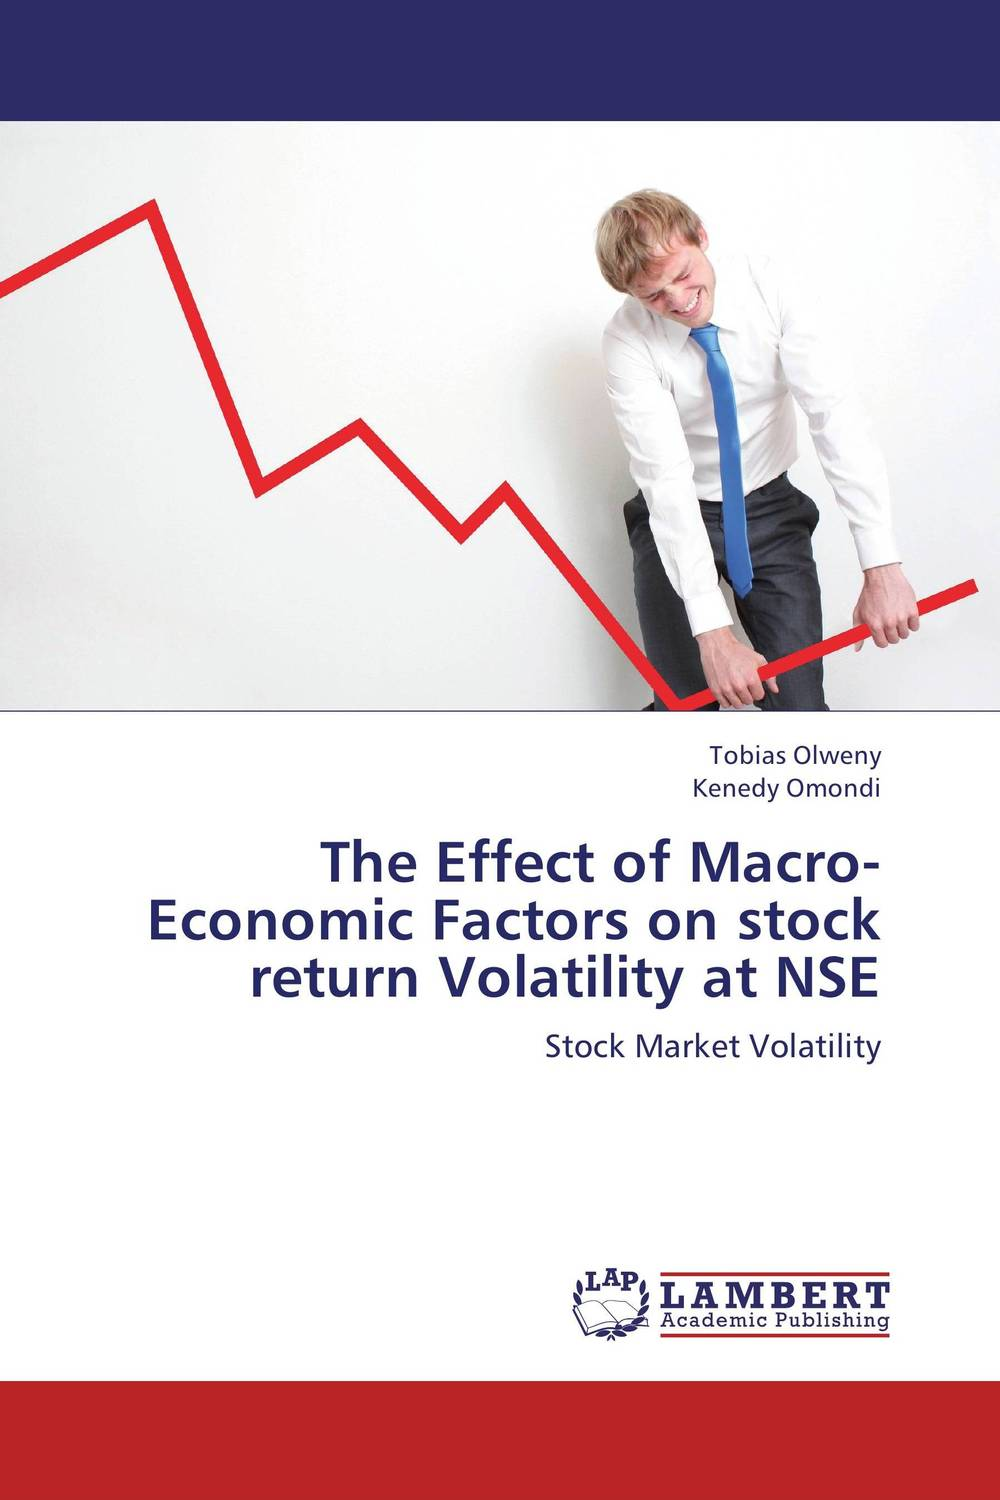 The Effect of Macro-Economic Factors on stock return Volatility at NSE dr babar zaheer butt and dr kashif ur rehman economic factors and stock returns sectoral analysis